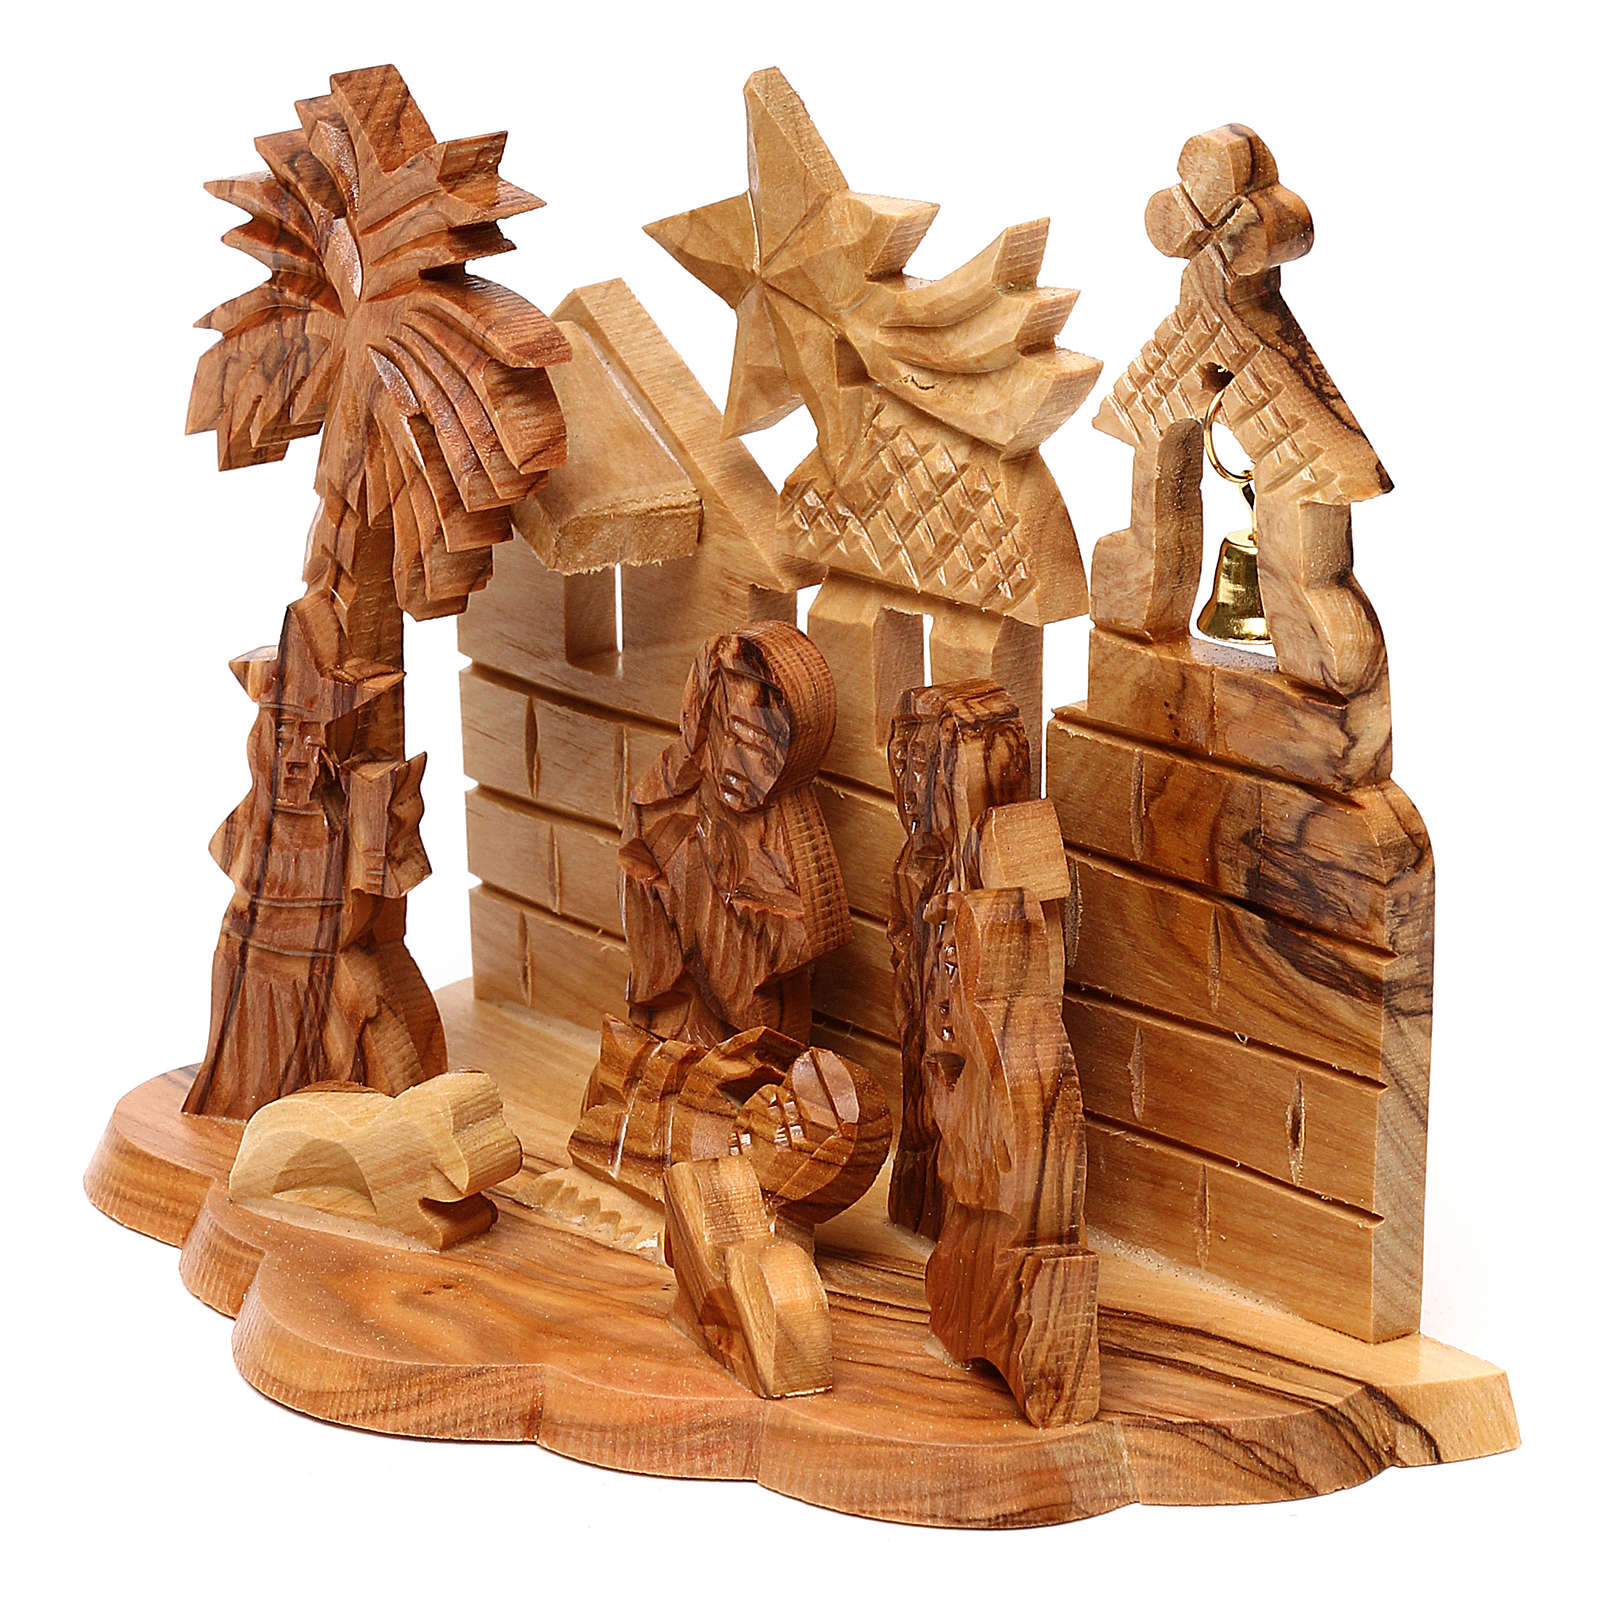 Nativity scene with cave and church in Bethlehem olive wood, stylized 10x15x10 cm 4